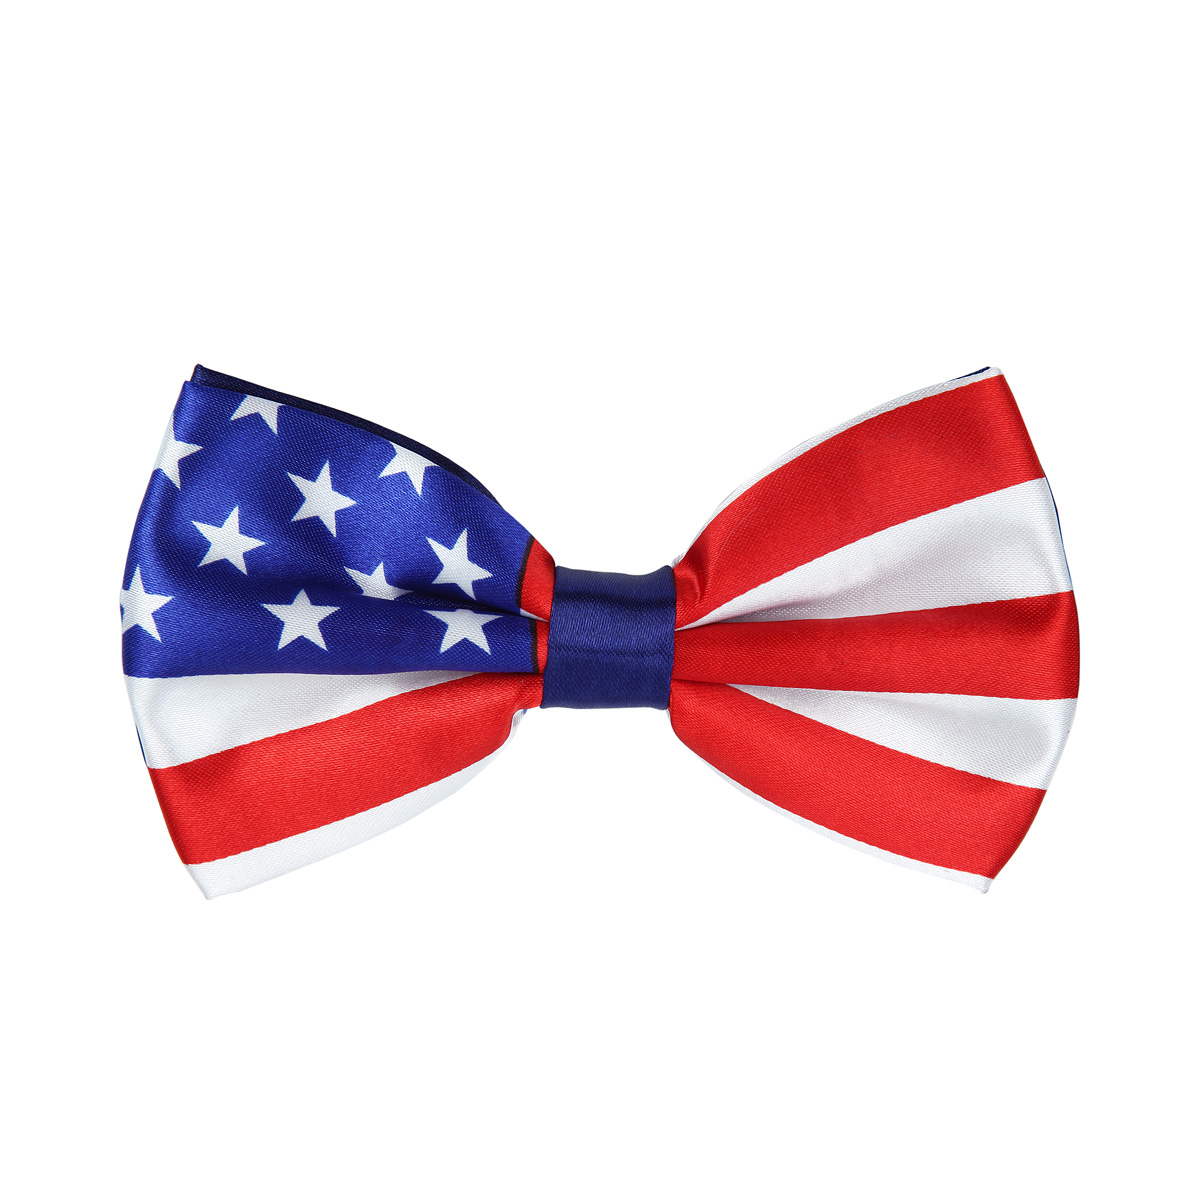 Premium Men's USA US American Flag Tuxedo Neck Bowtie Bow Tie